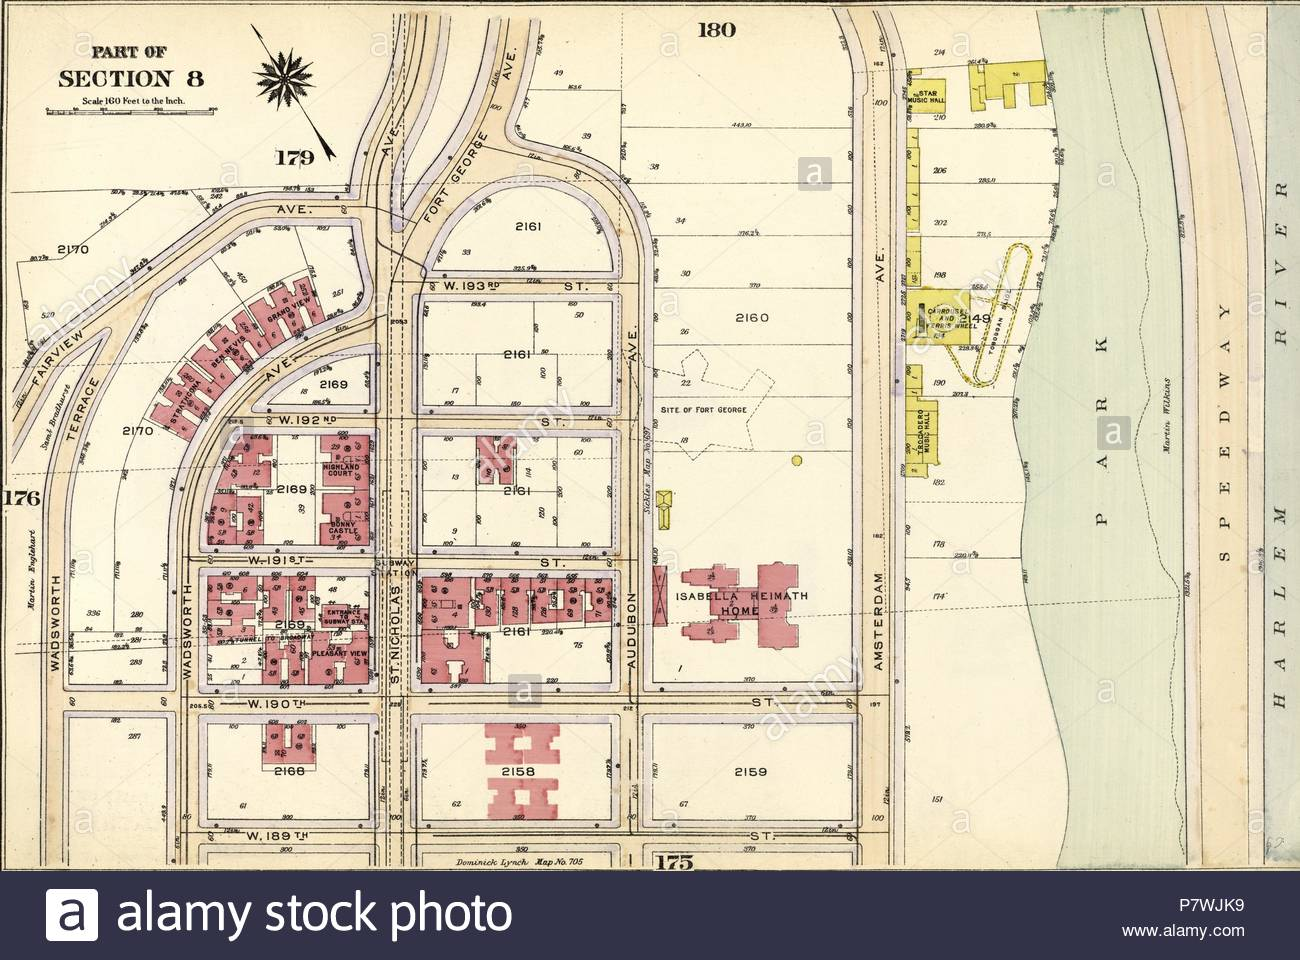 Plate 177: Bounded by Fairview Avenue, Isabella Heimath Home, Amsterdam Avenue Harlem River,W. 189th Street, W. 190th Street and Wadsworth Terrace. - Stock Image